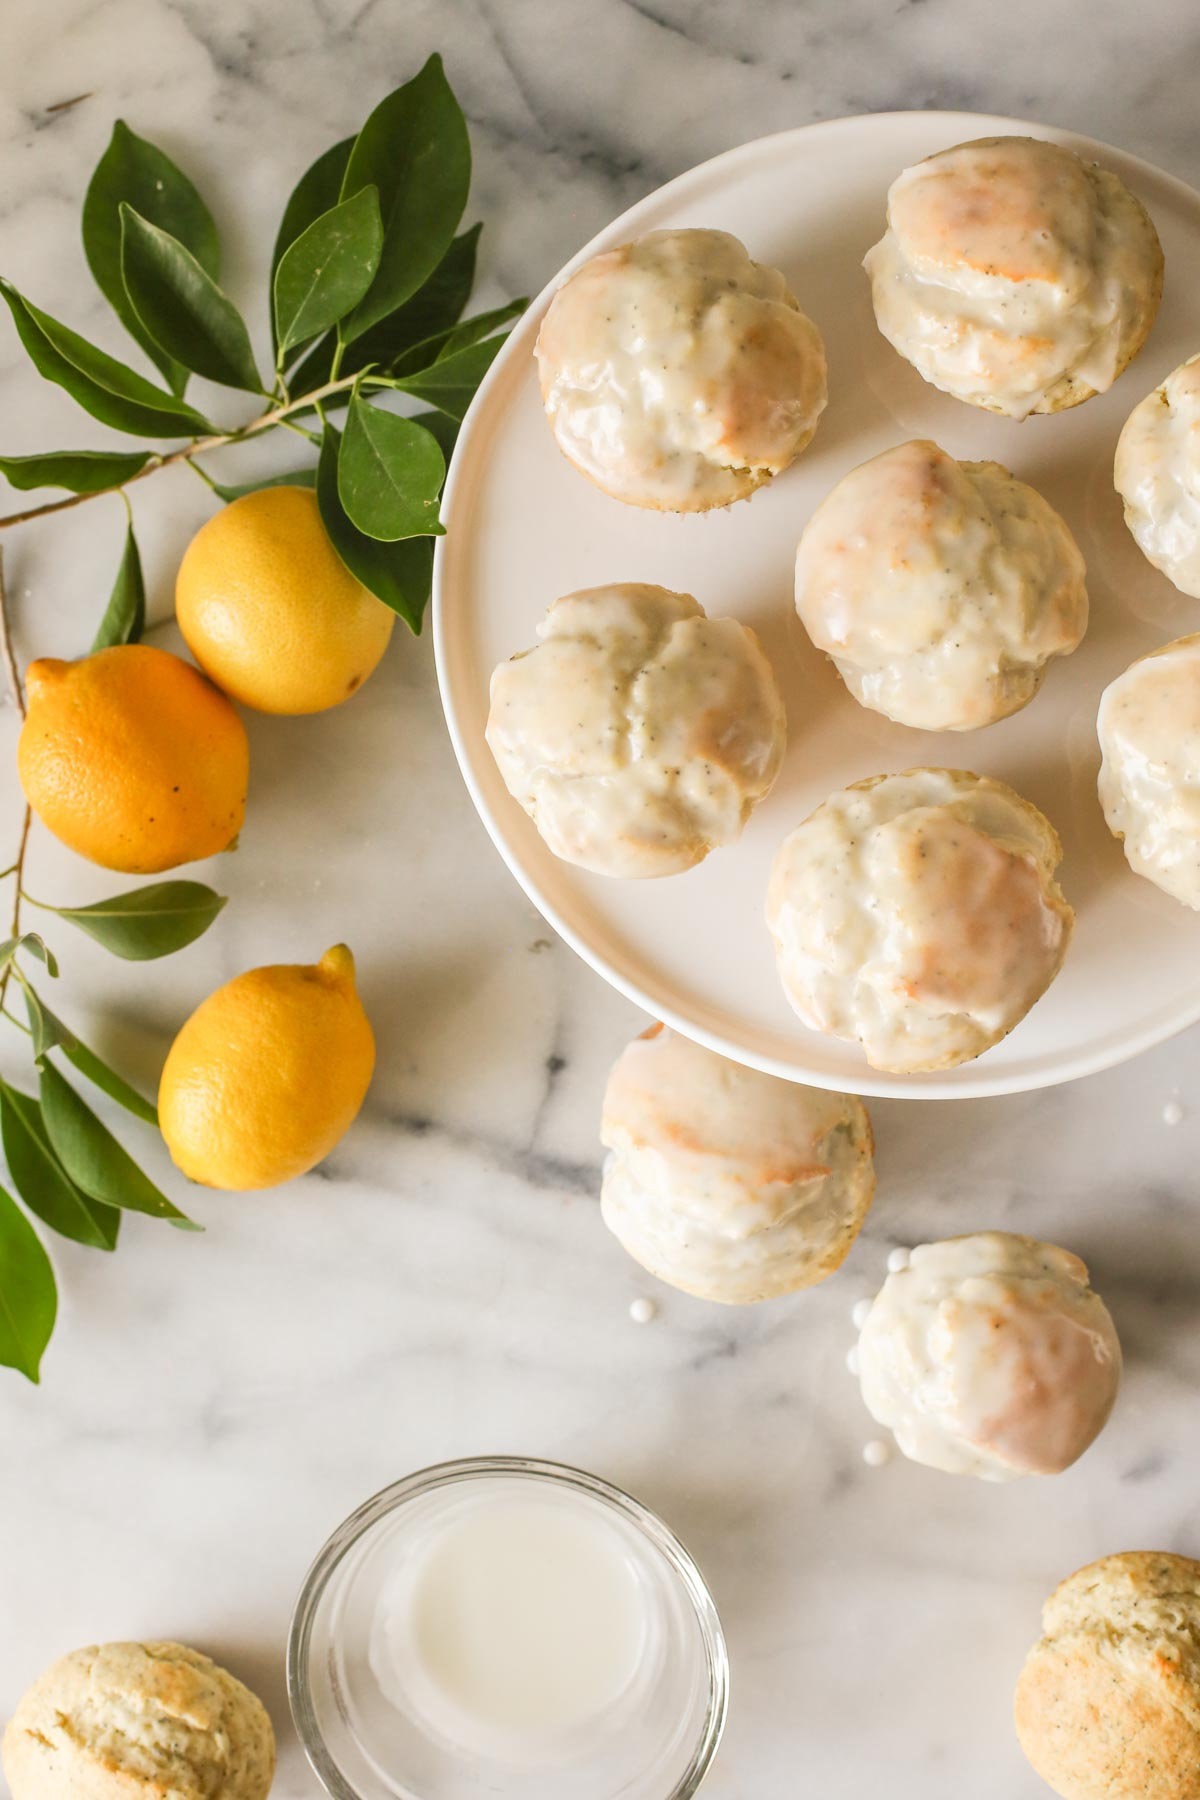 Overhead shot of Glazed Lemon Poppy Seed Muffins on a cake stand with two muffins next to the stand and two unglazed muffins next to a glass bowl of glaze, all on a marble background with a branch from a lemon tree and three whole lemons.